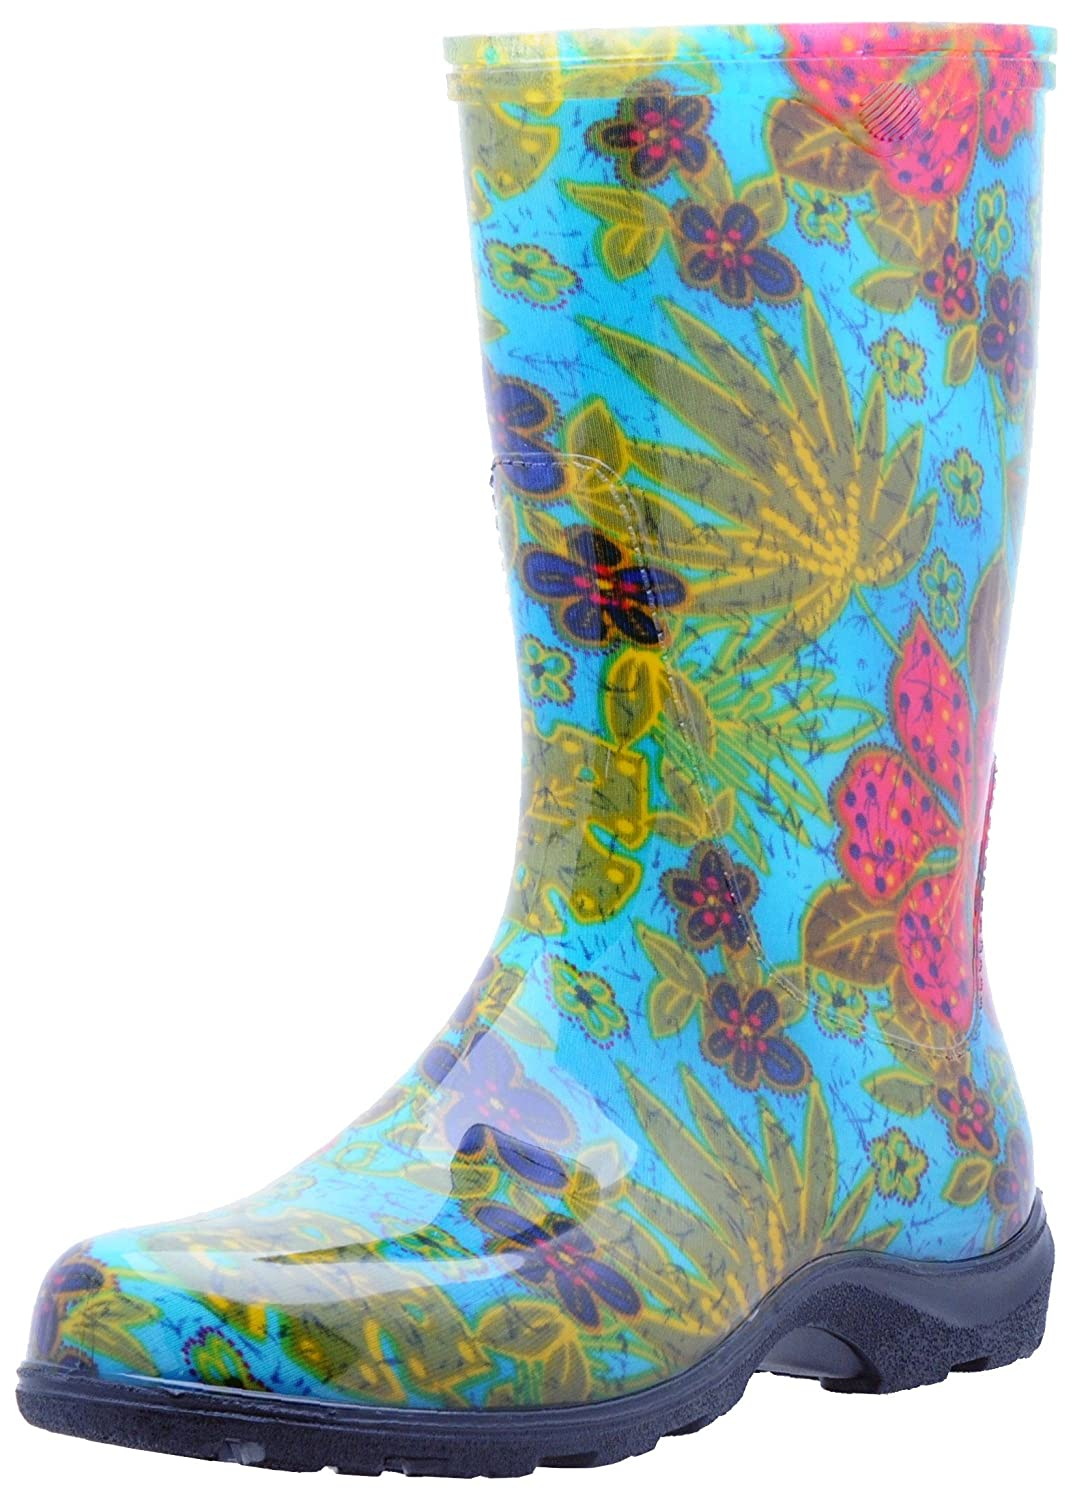 SloggersWomen's Waterproof Rain and Garden Boot with Comfort Insole, Midsummer Blue, Size 8,Style 5002BL08